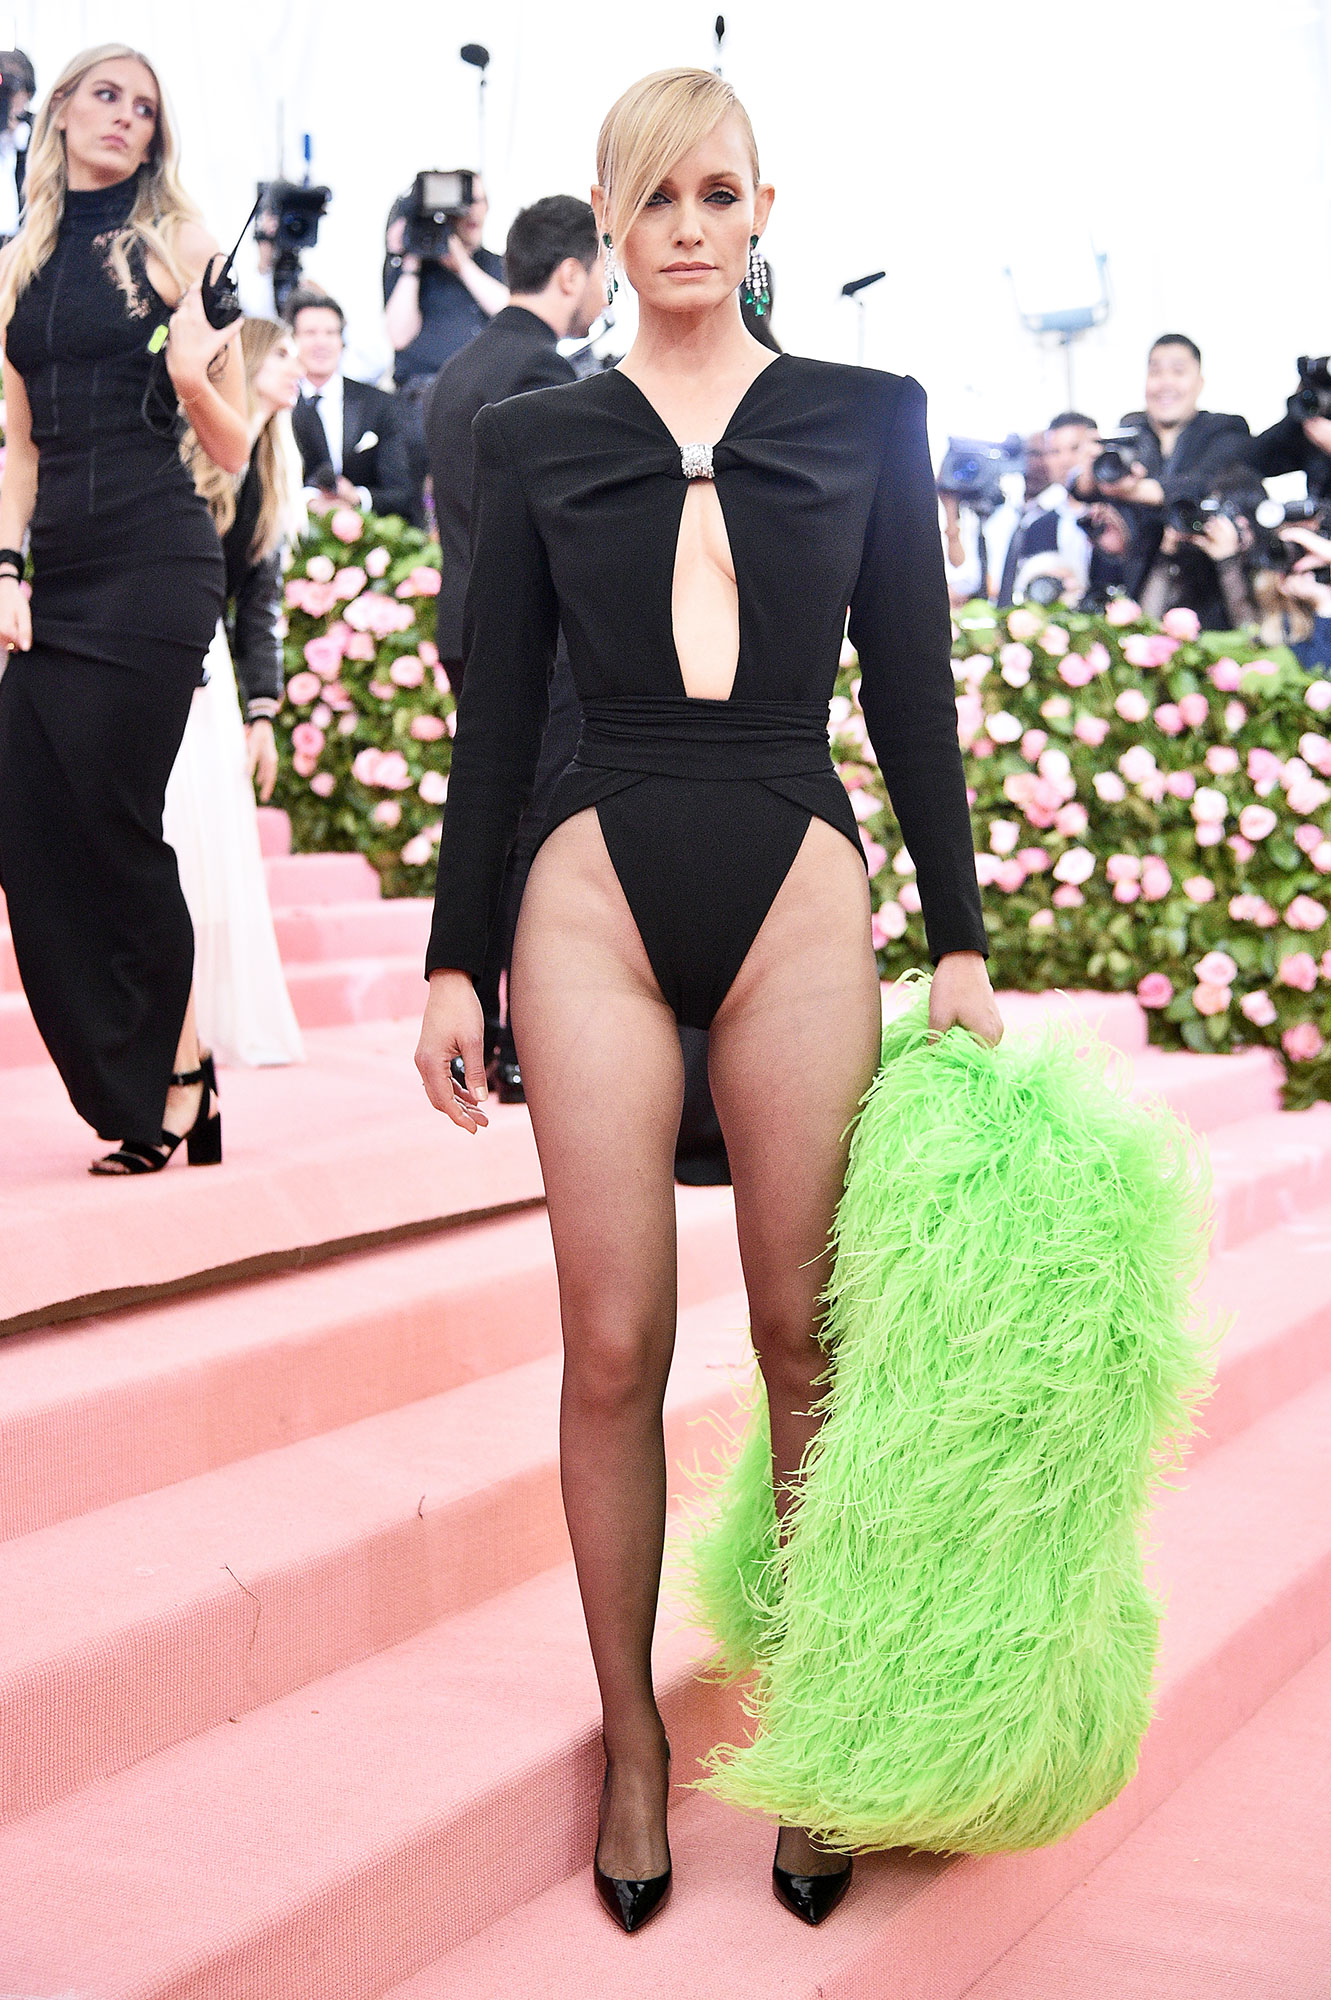 Amber Valletta met gala 2019 - Wearing a black leotard with a featherd green jacket and Chopard jewels.